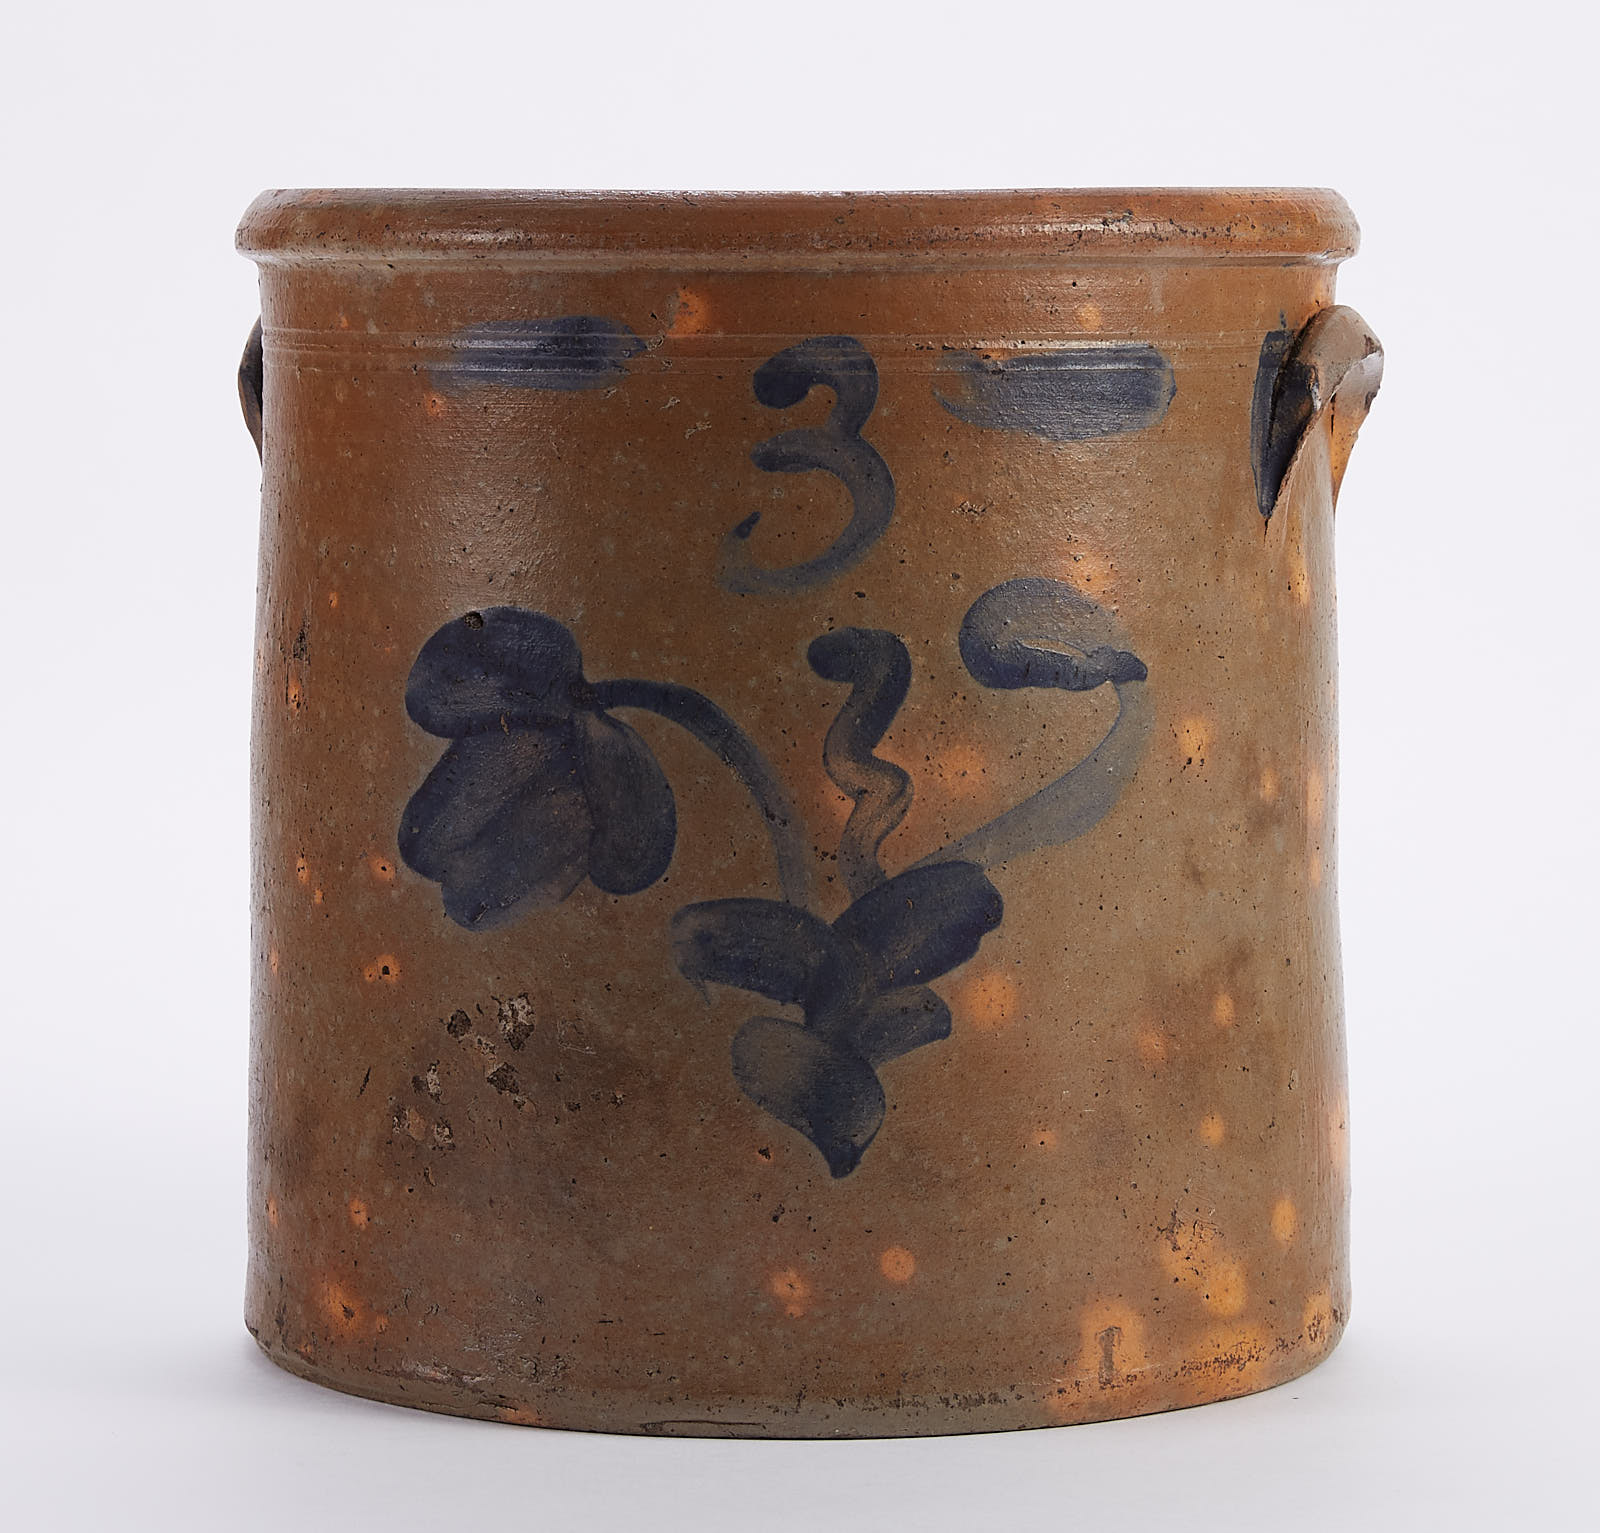 Lot 225: Pennsylvania Stoneware Crock